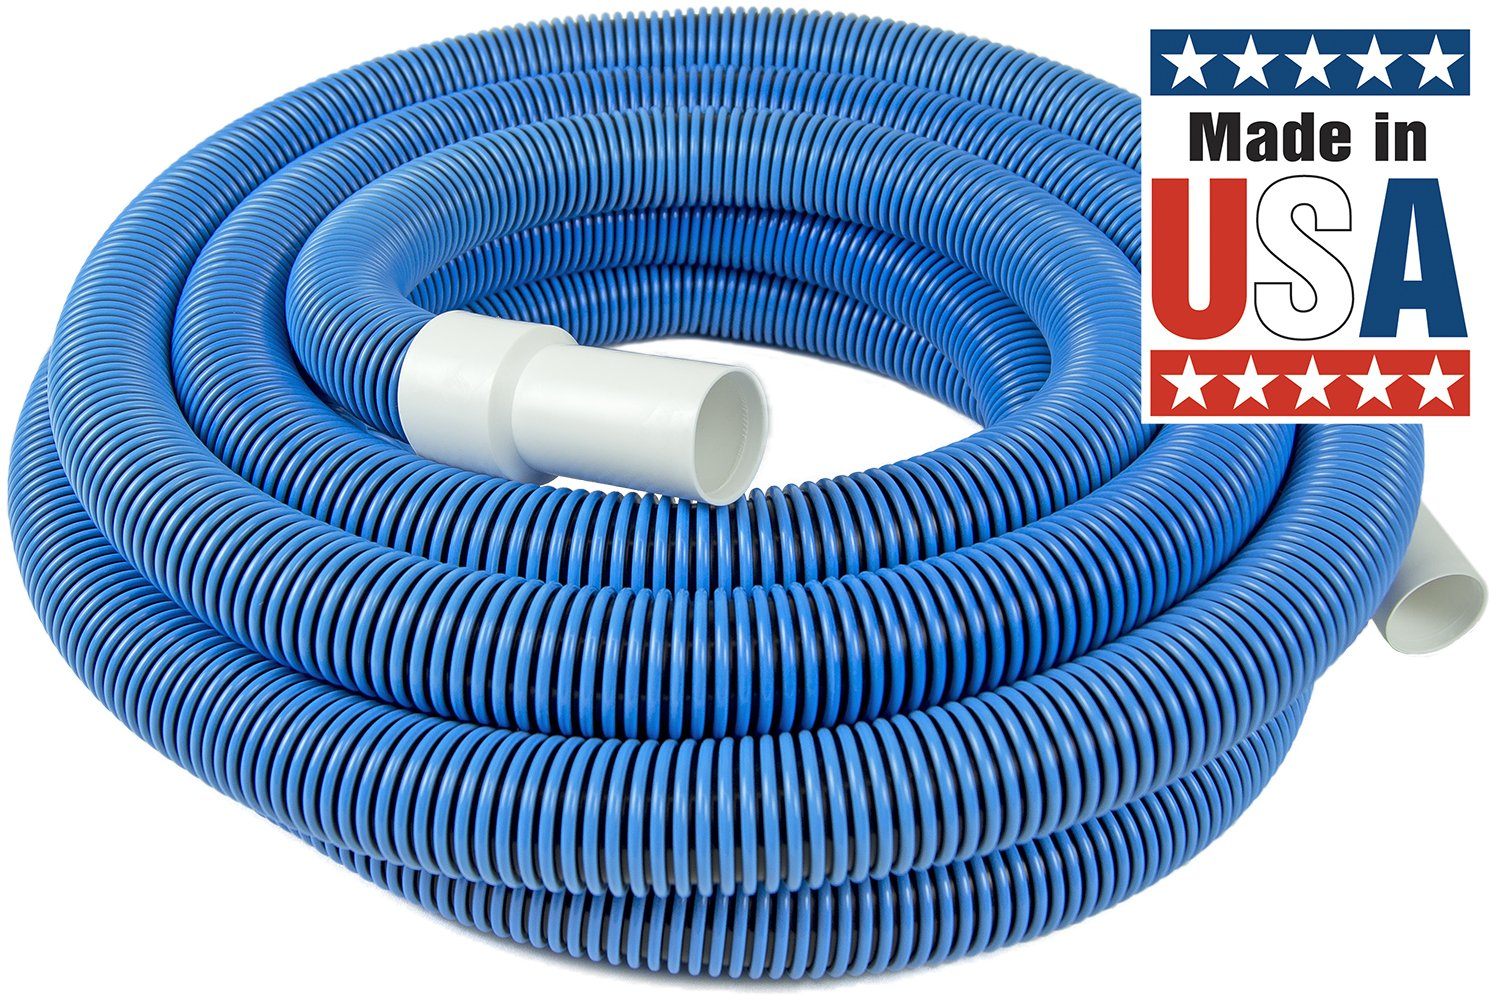 Poolmaster 33445 Heavy Duty In-Ground Pool Vacuum Hose With Swivel Cuff, 1-1/2-Inch by 45-Feet by Poolmaster